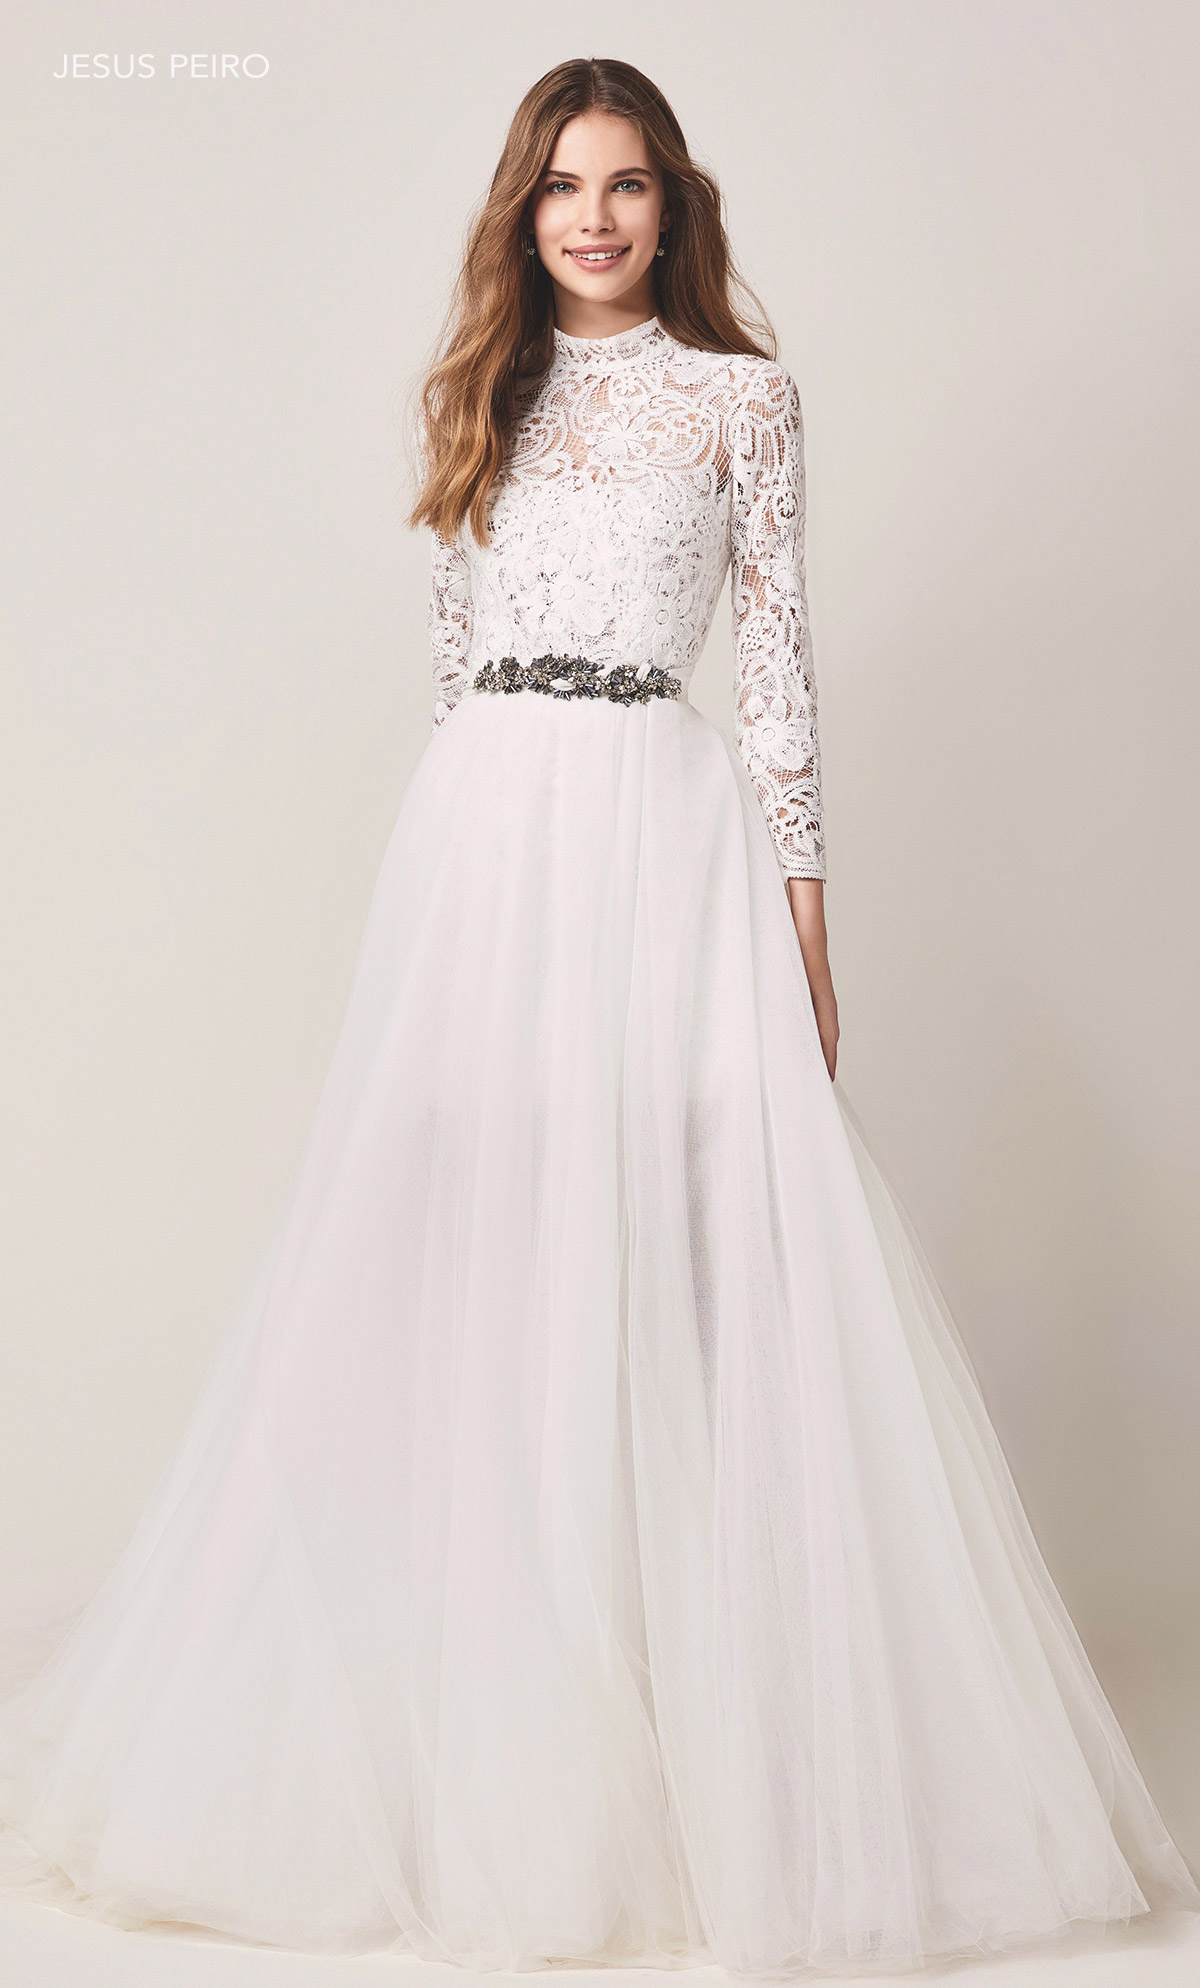 Jesus Peiró lace wedding dress